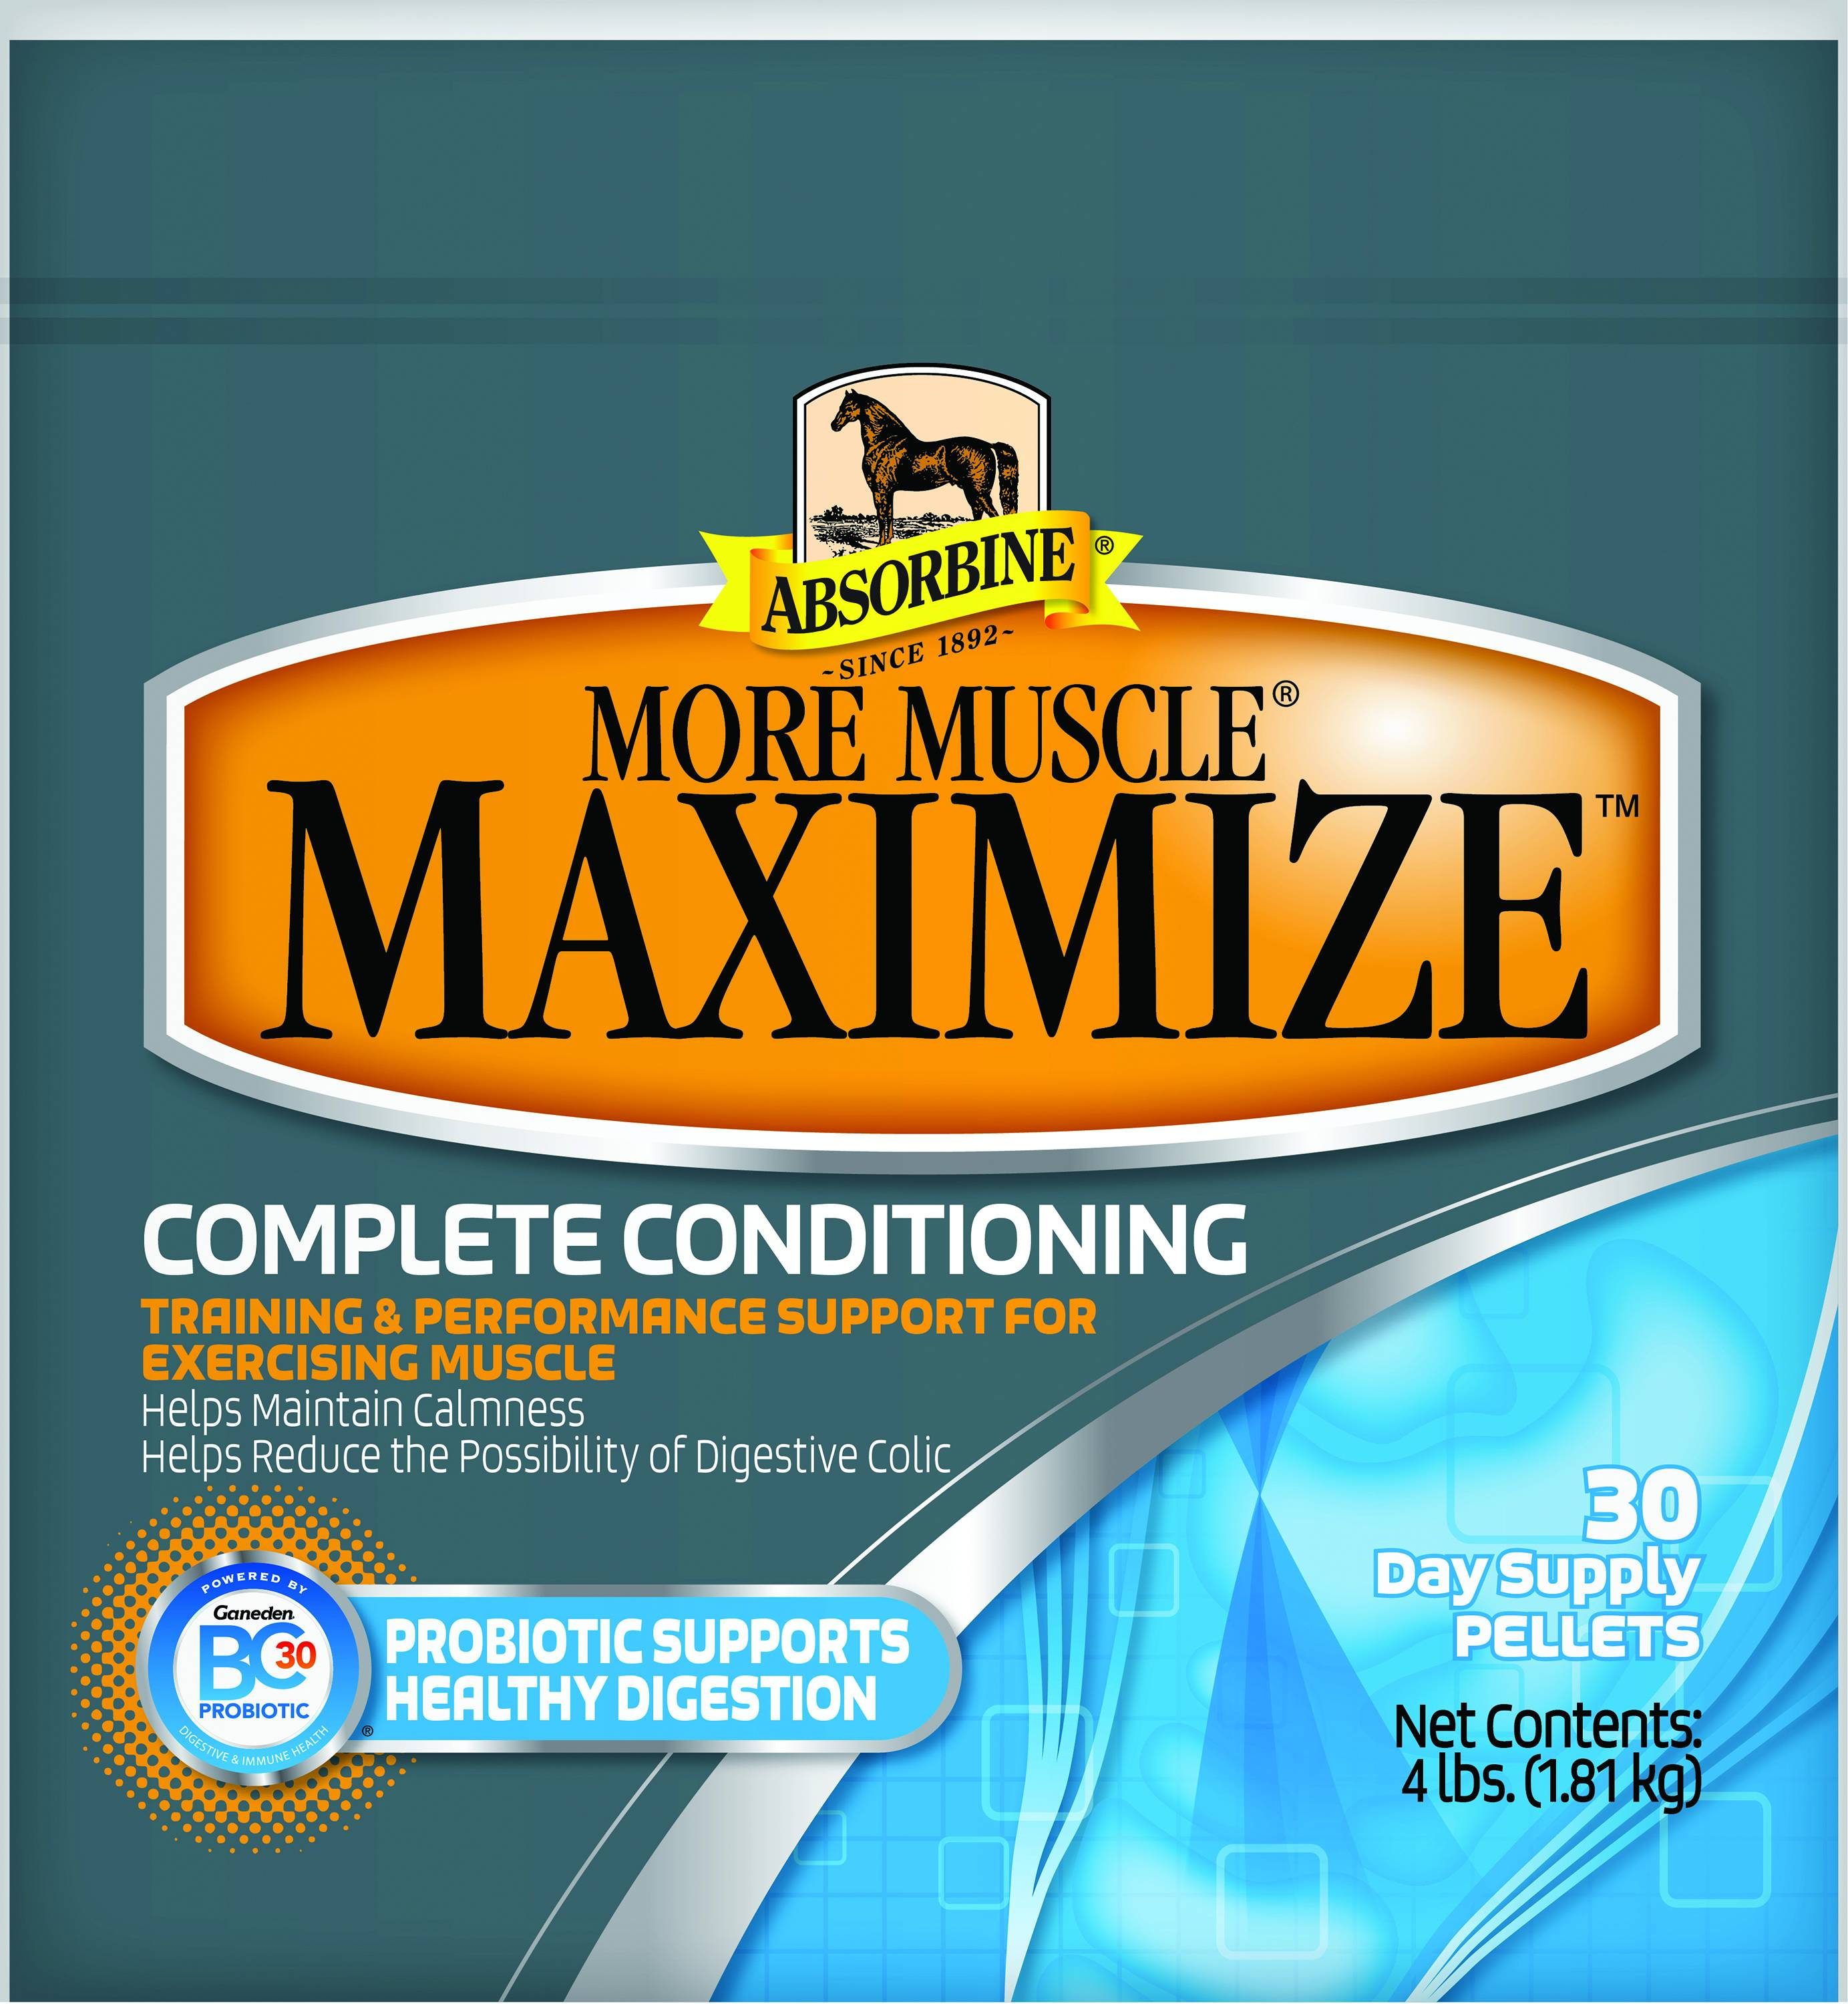 Absorbine More Muscle Maximize 4 lb4730 Day